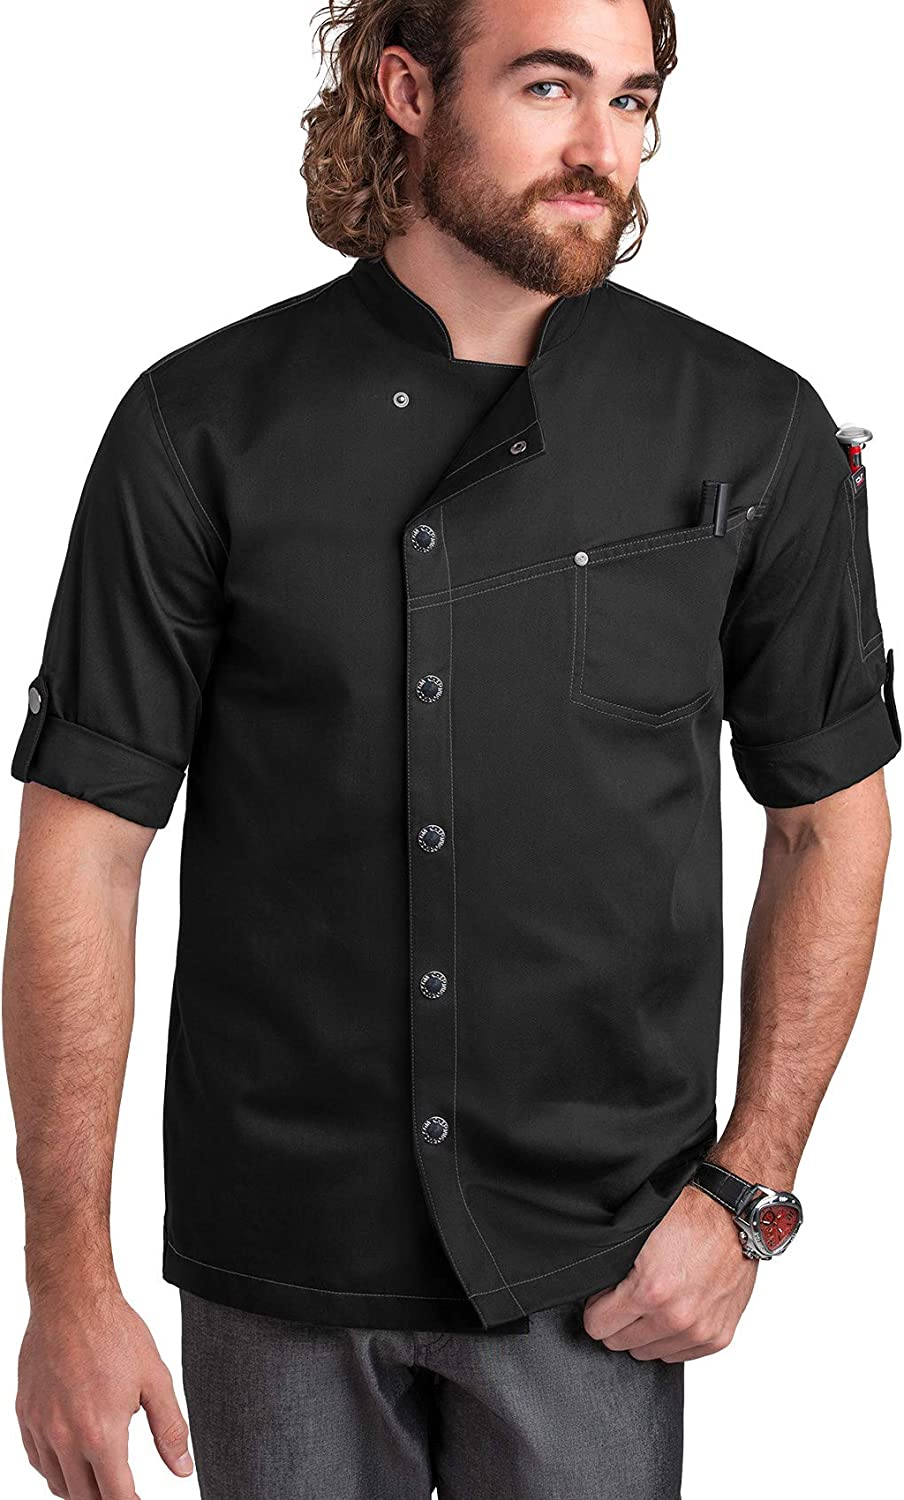 Men's Asymmetrical 3/4 Rolled Up Sleeves Chef Coat (S-3X, 2 Colors)